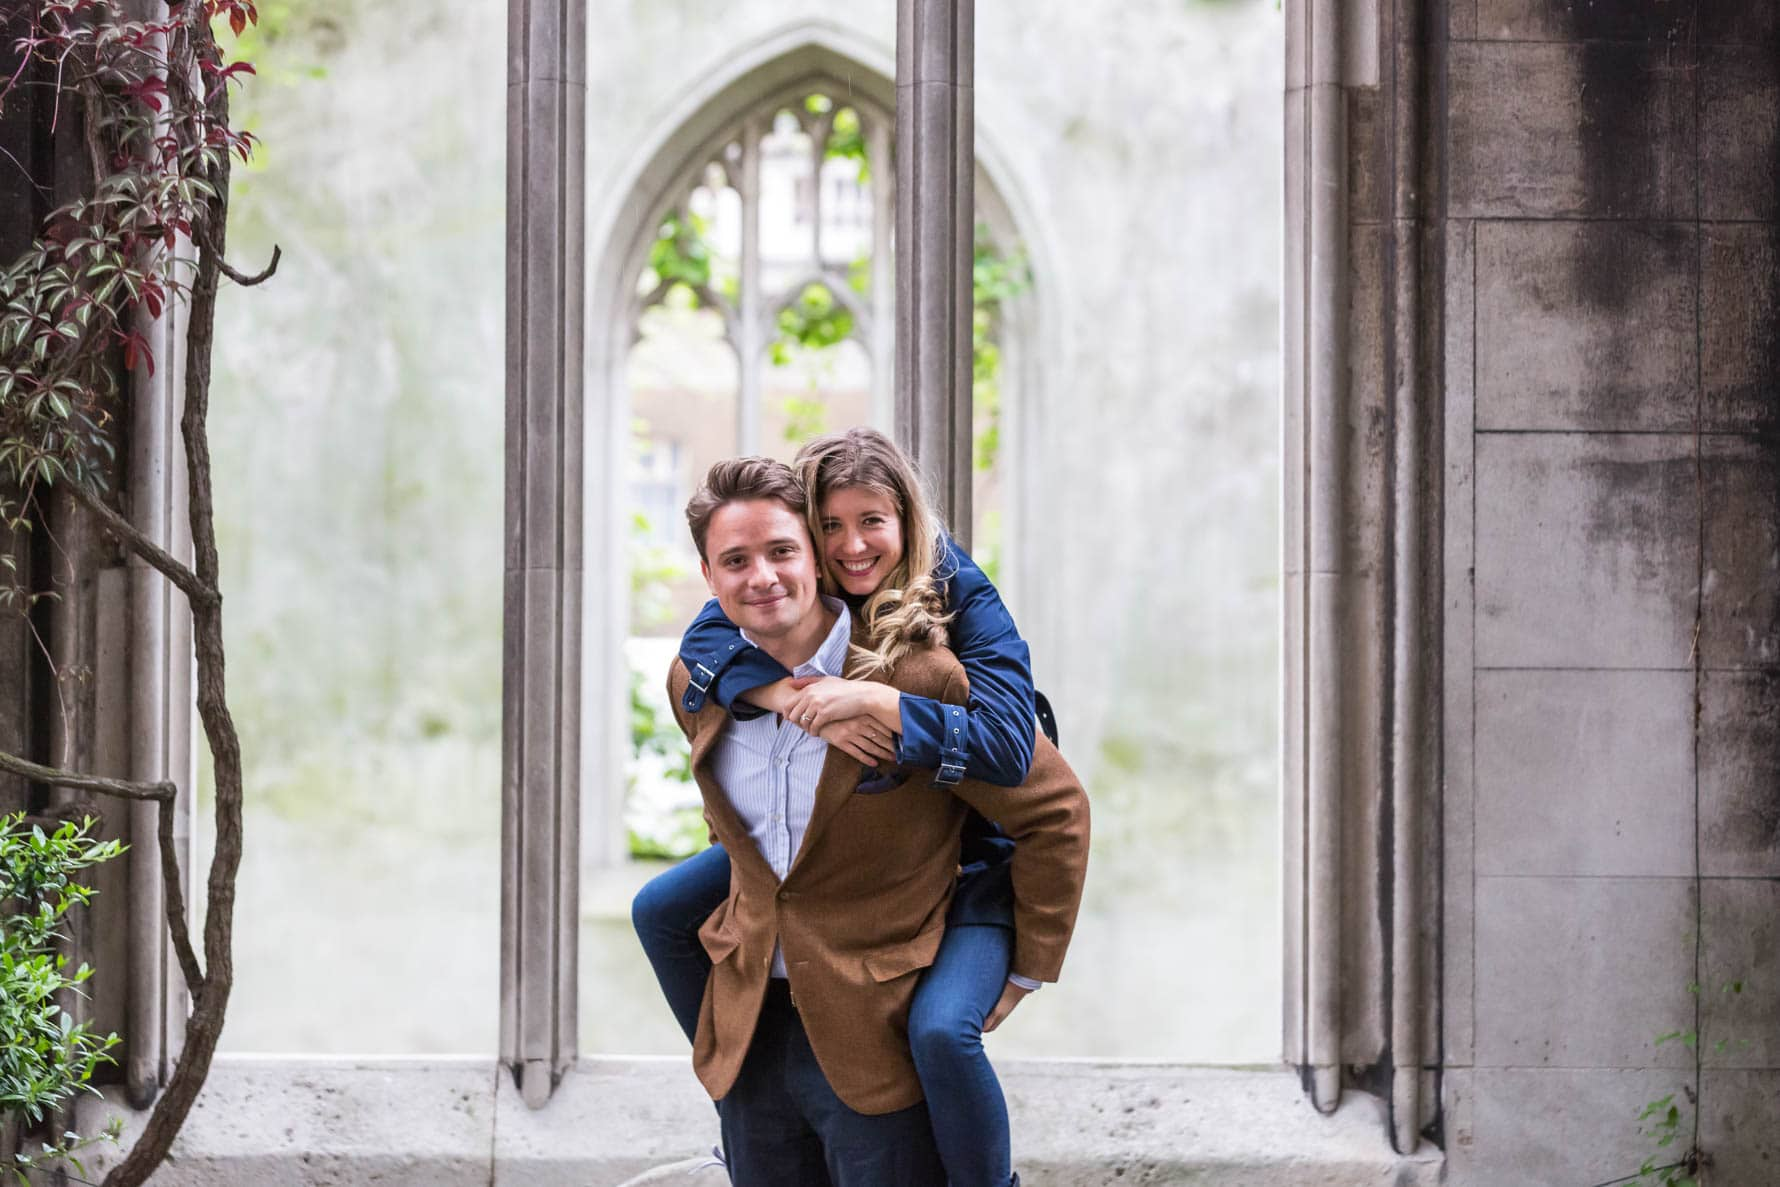 Oliver gives Paula a piggyback during their fun London engagement photoshoot in the beautiful gardens of St Dunstan-in-the-East